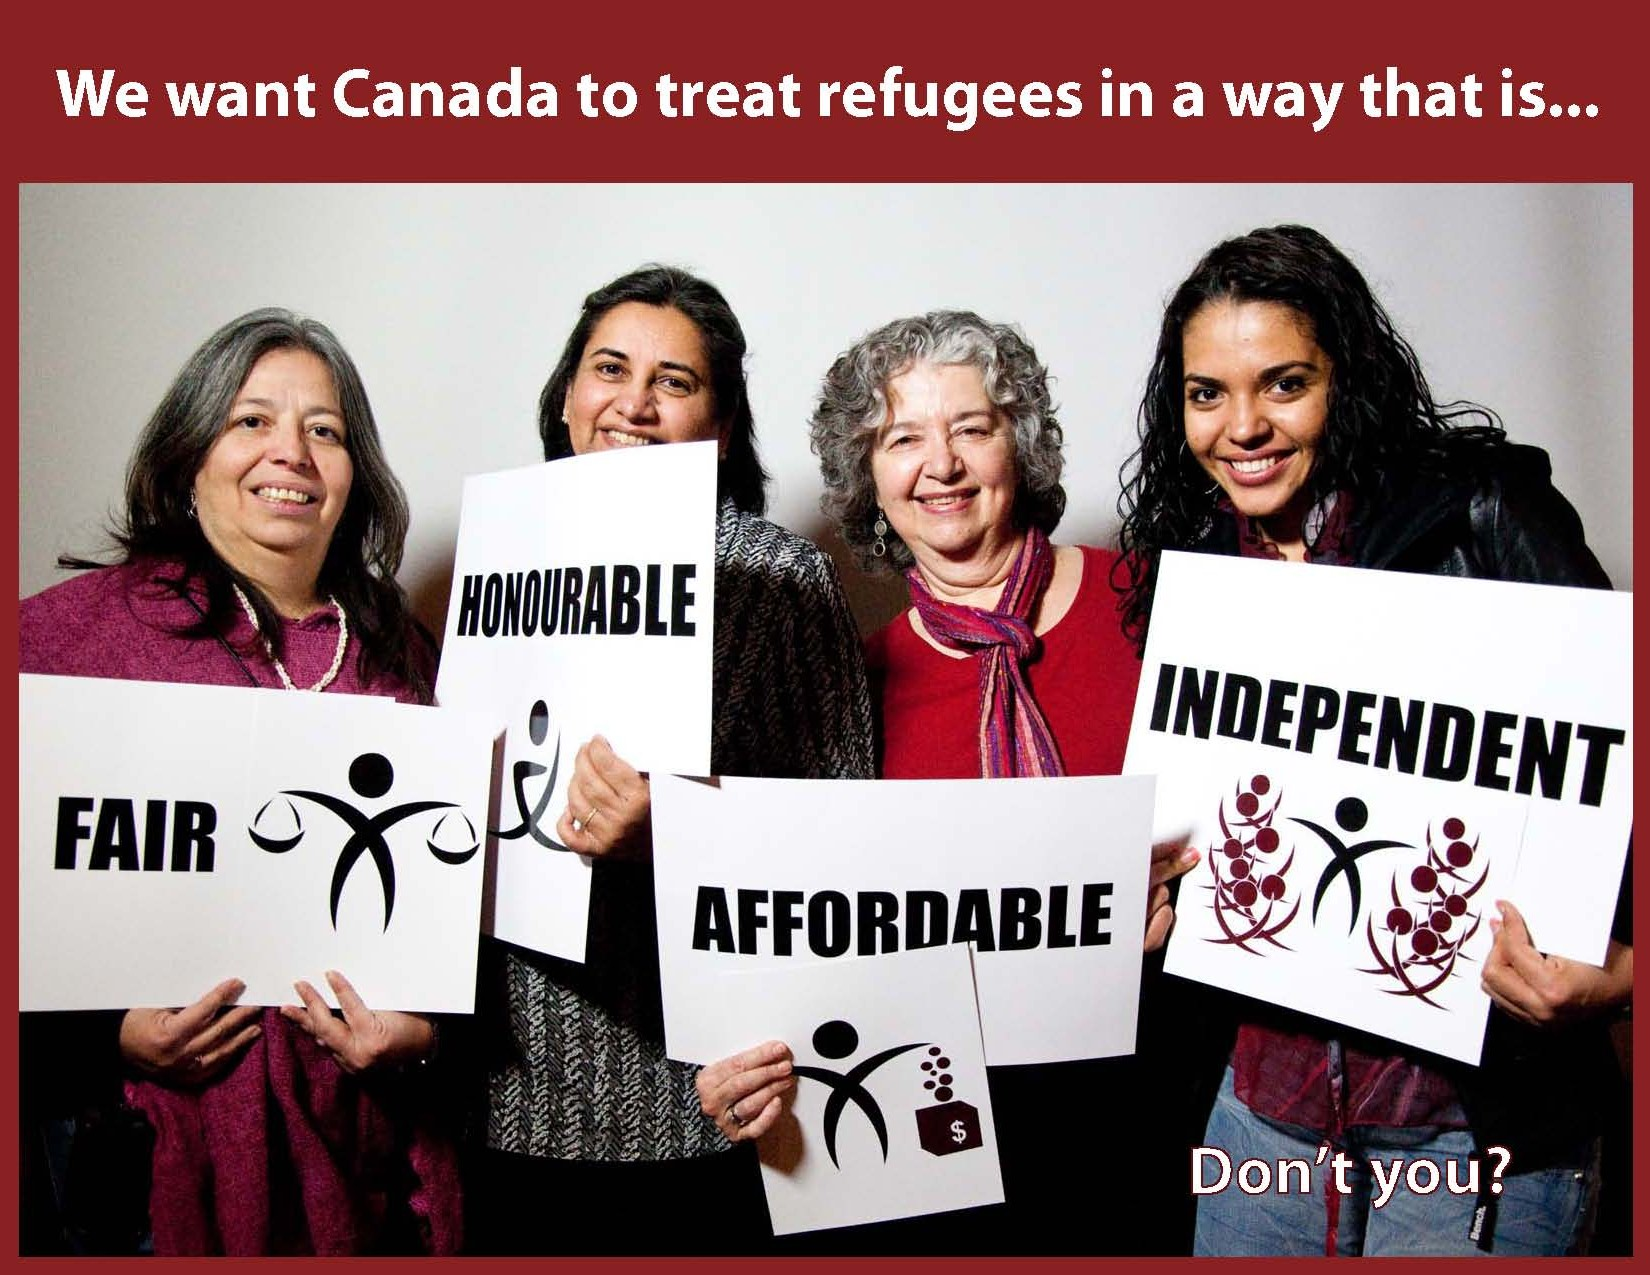 What we want for refugees in Canada